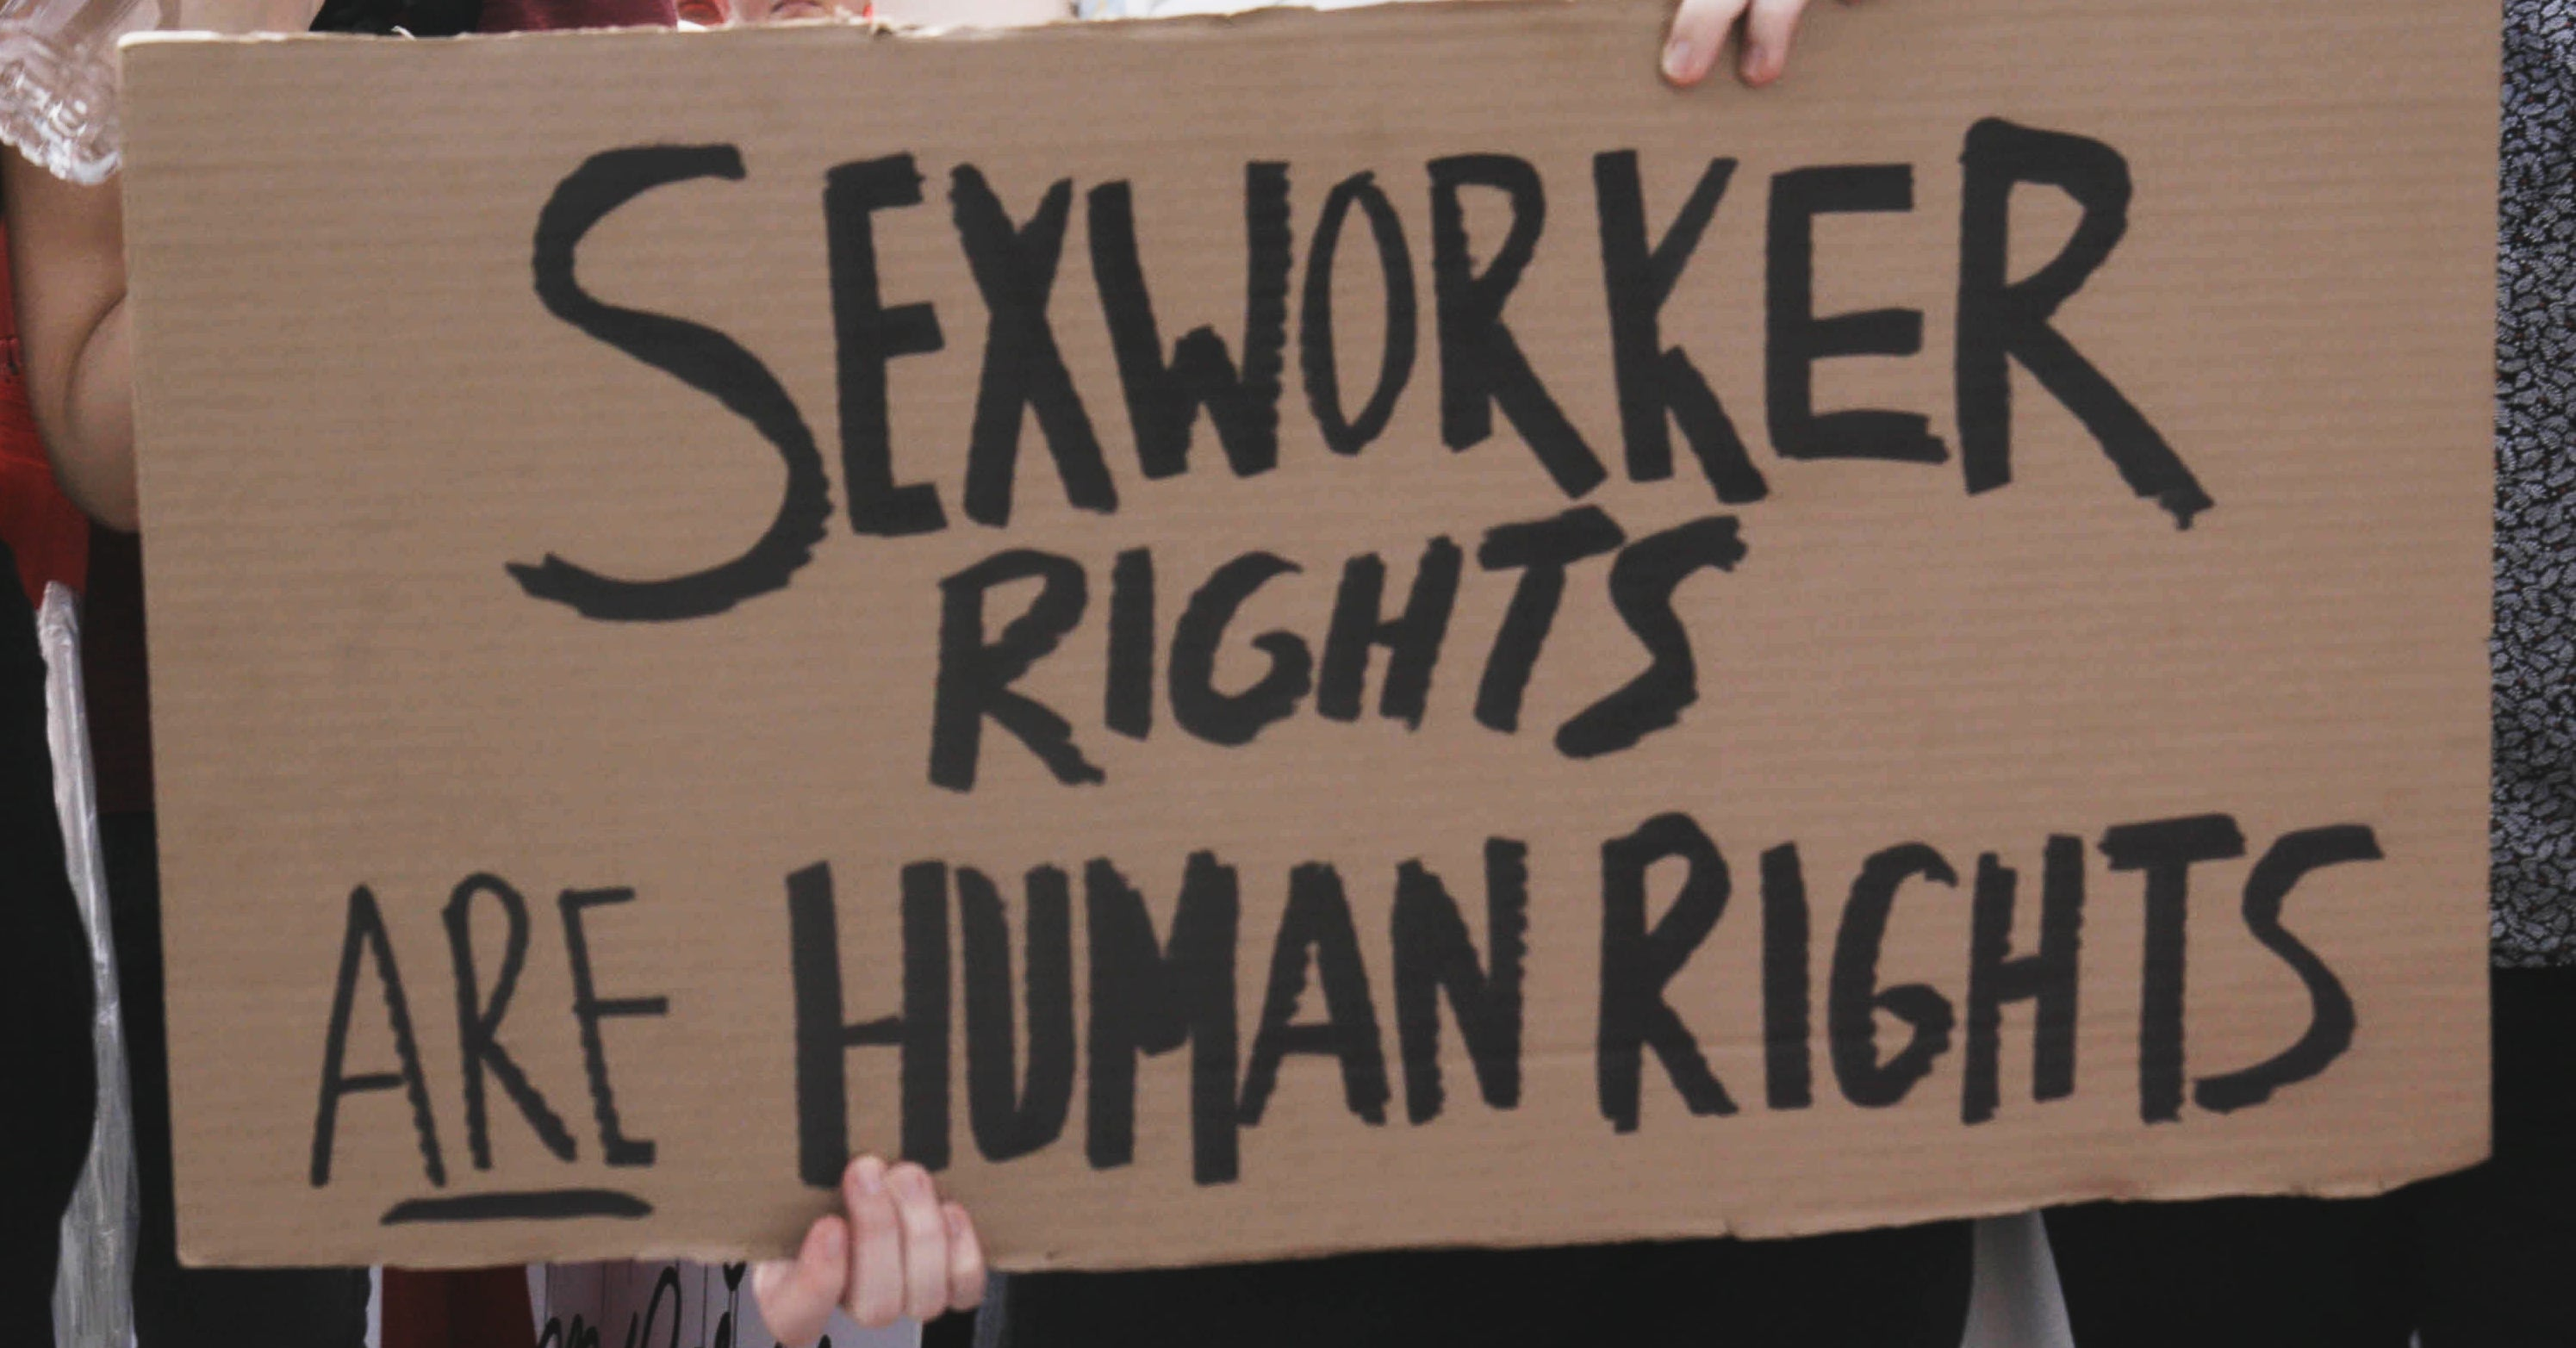 Sex Workers Say Human Trafficking Laws Are Making Their Jobs More Dangerous